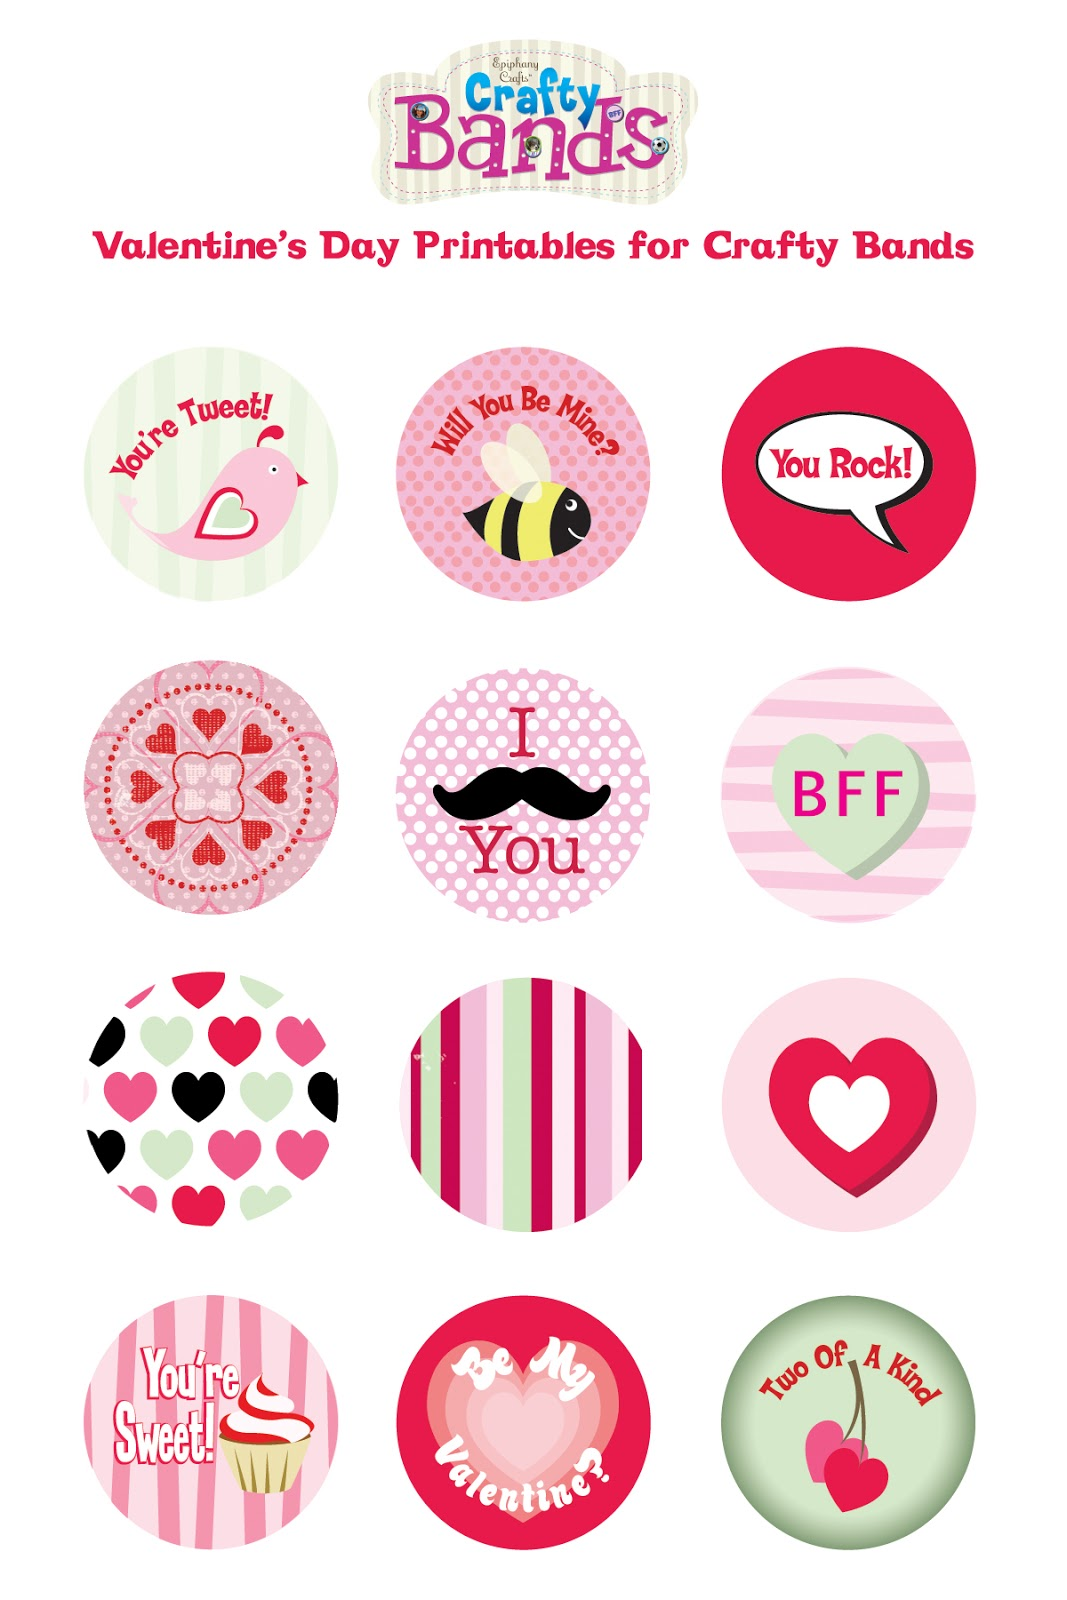 Craftybandsblog Crafty Bands Valentine Printables